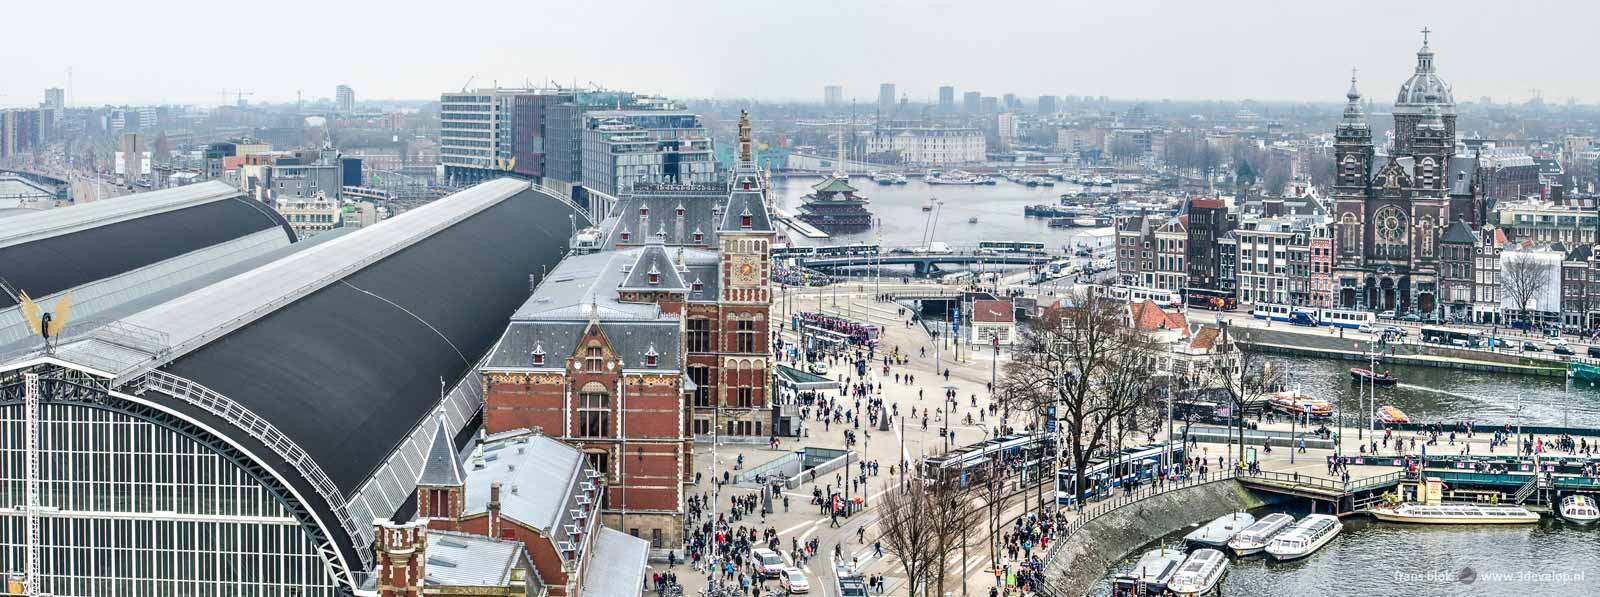 Panoramic aerial view of the Central Station and station square in Amsterdam